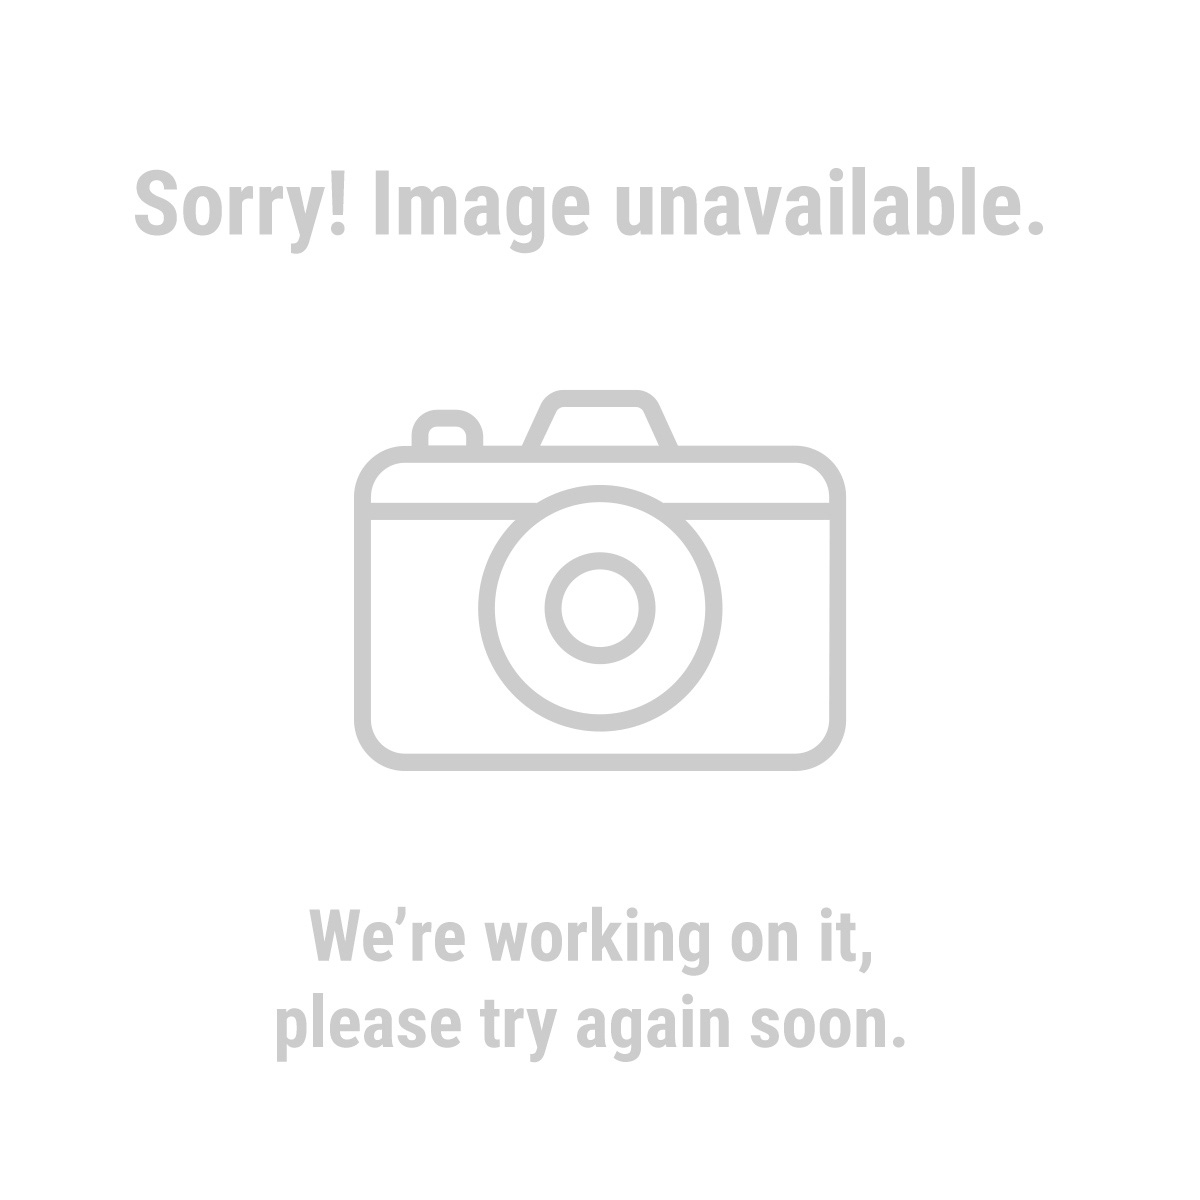 ARROWCOPTER 98853 Pack of 2 Arrowcopter® Toys